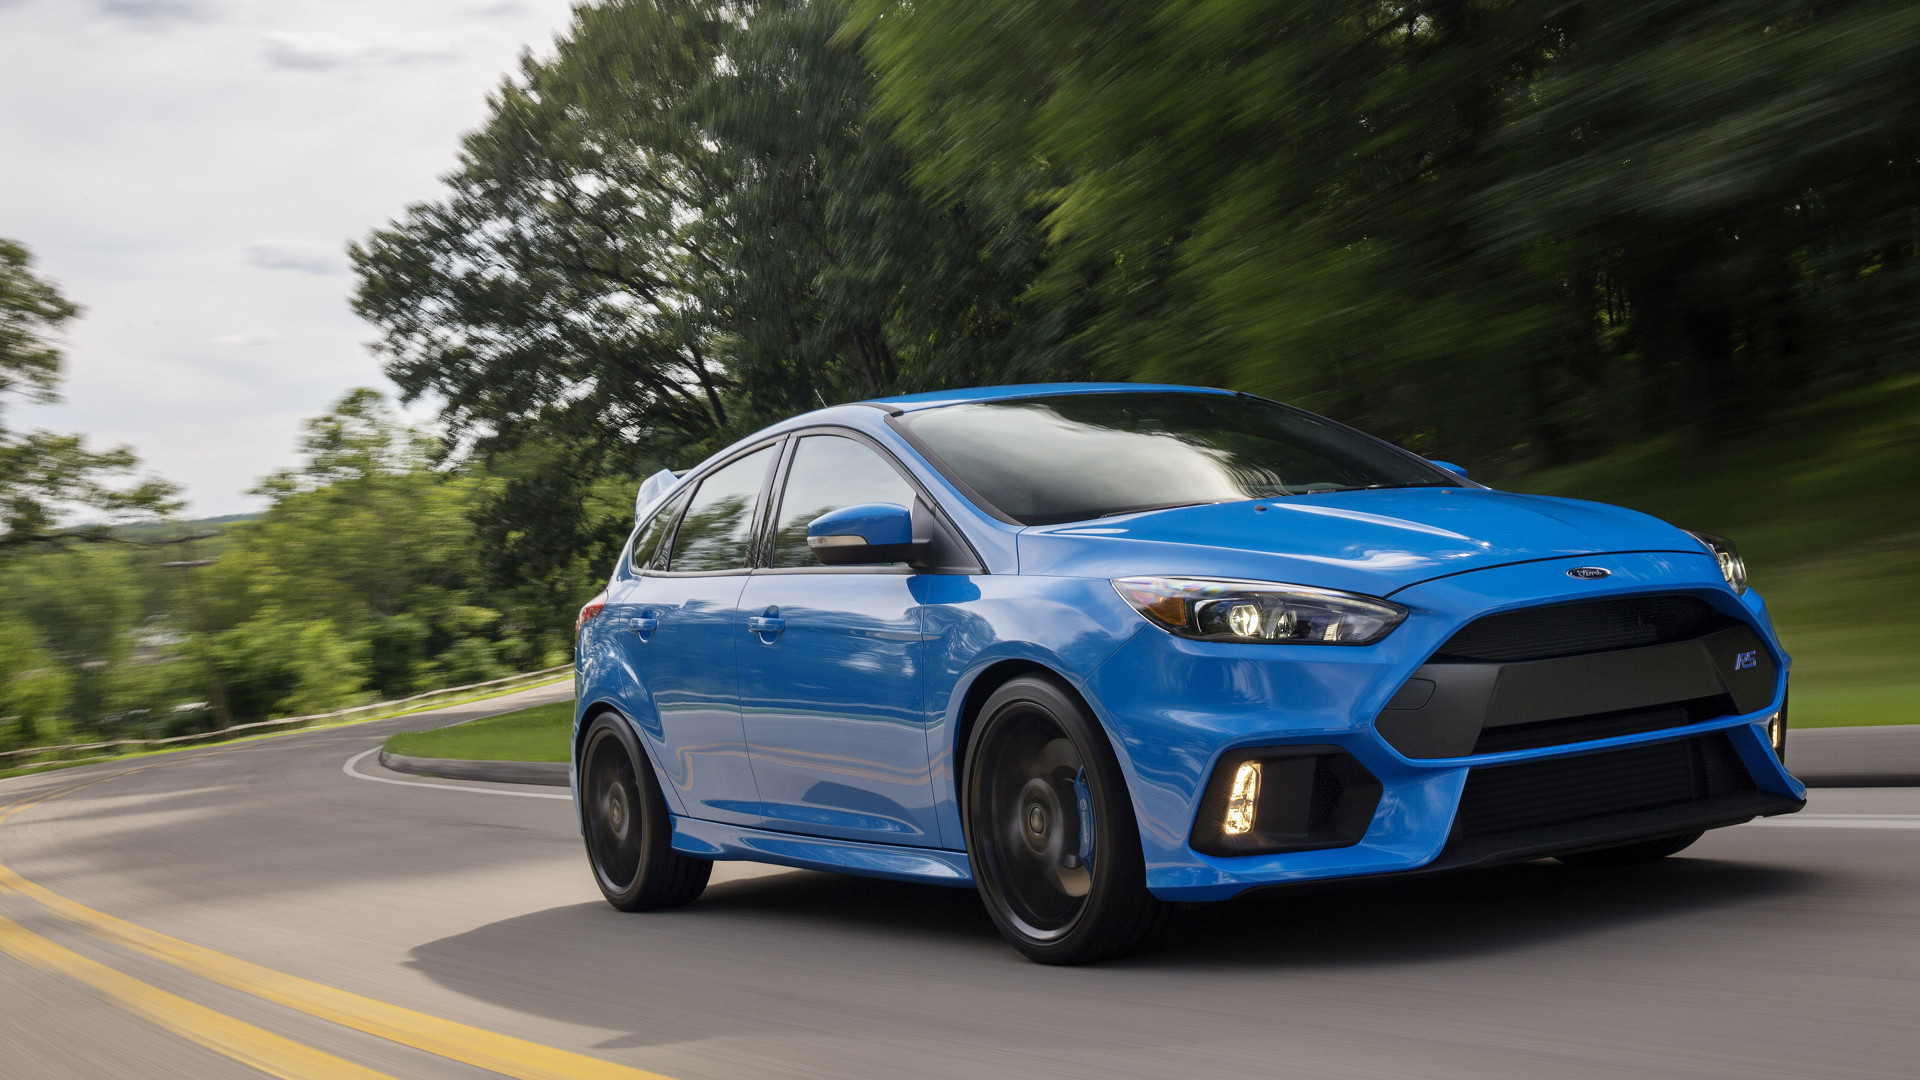 Ford Focus Rs Wallpapers (54+ images)